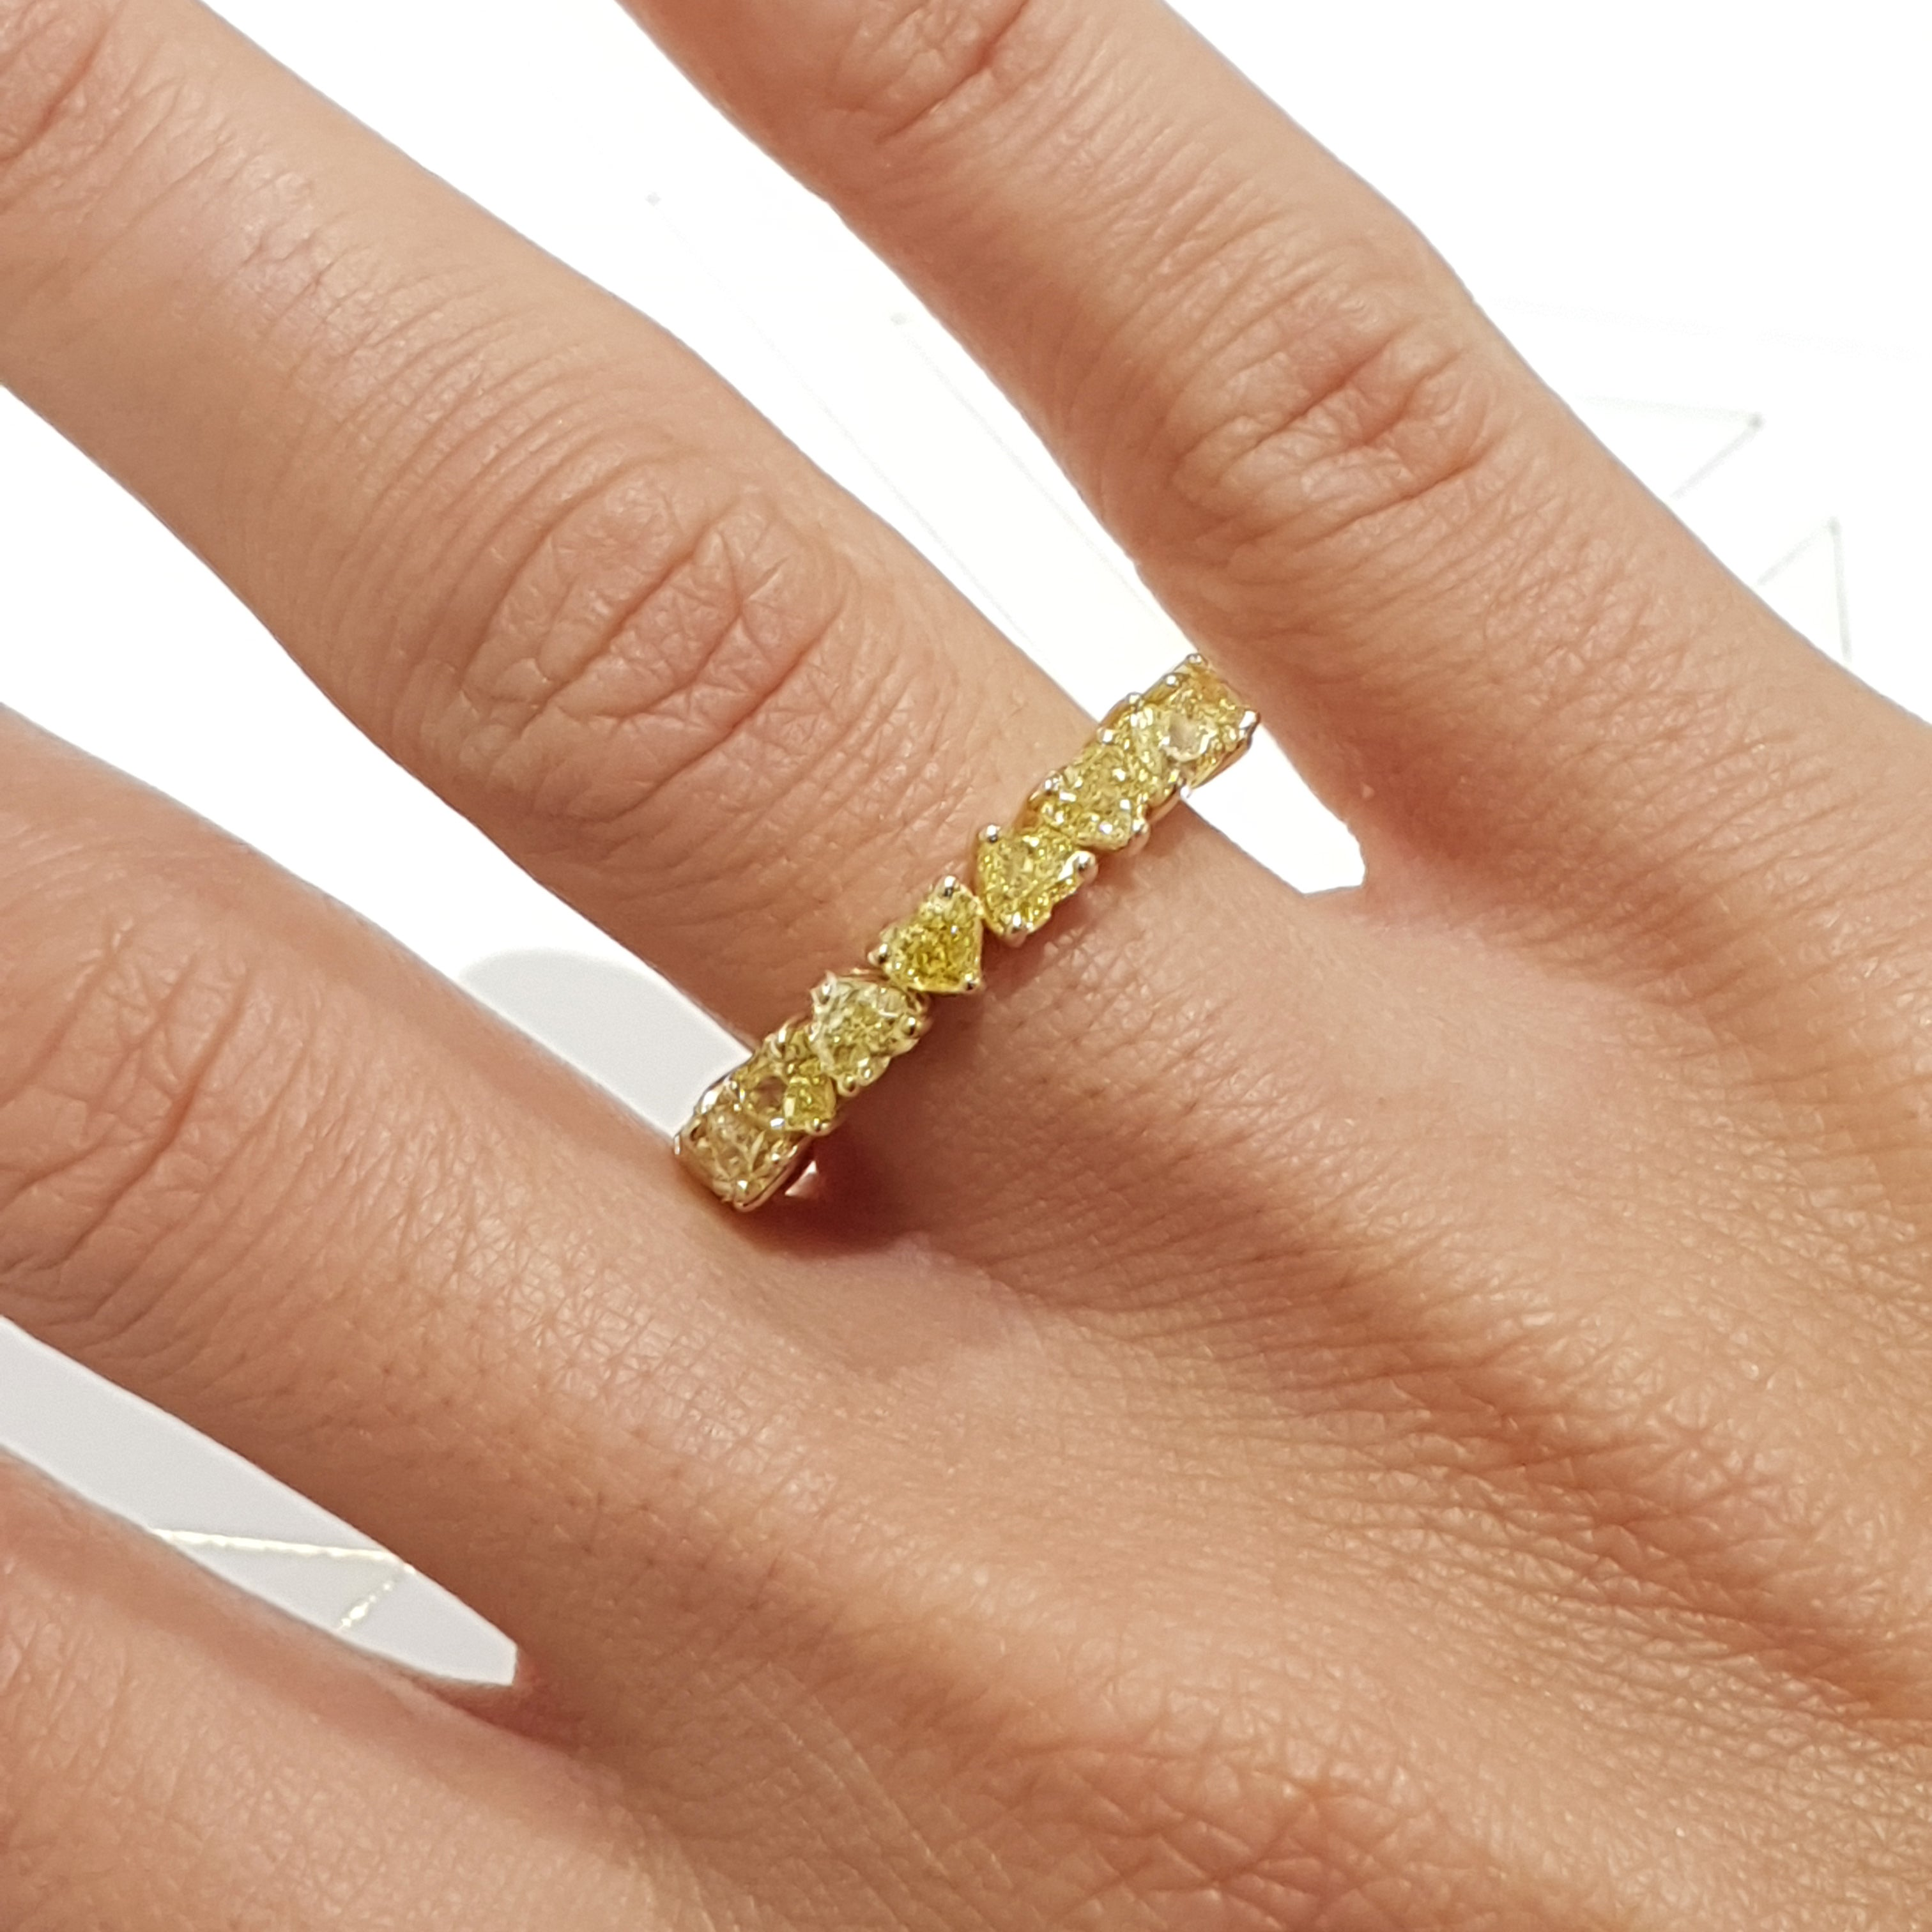 18K Yellow Gold Heart Shape Diamonds Eternity Ring 4.28 Carat Natural Fancy Yellow #PT1349